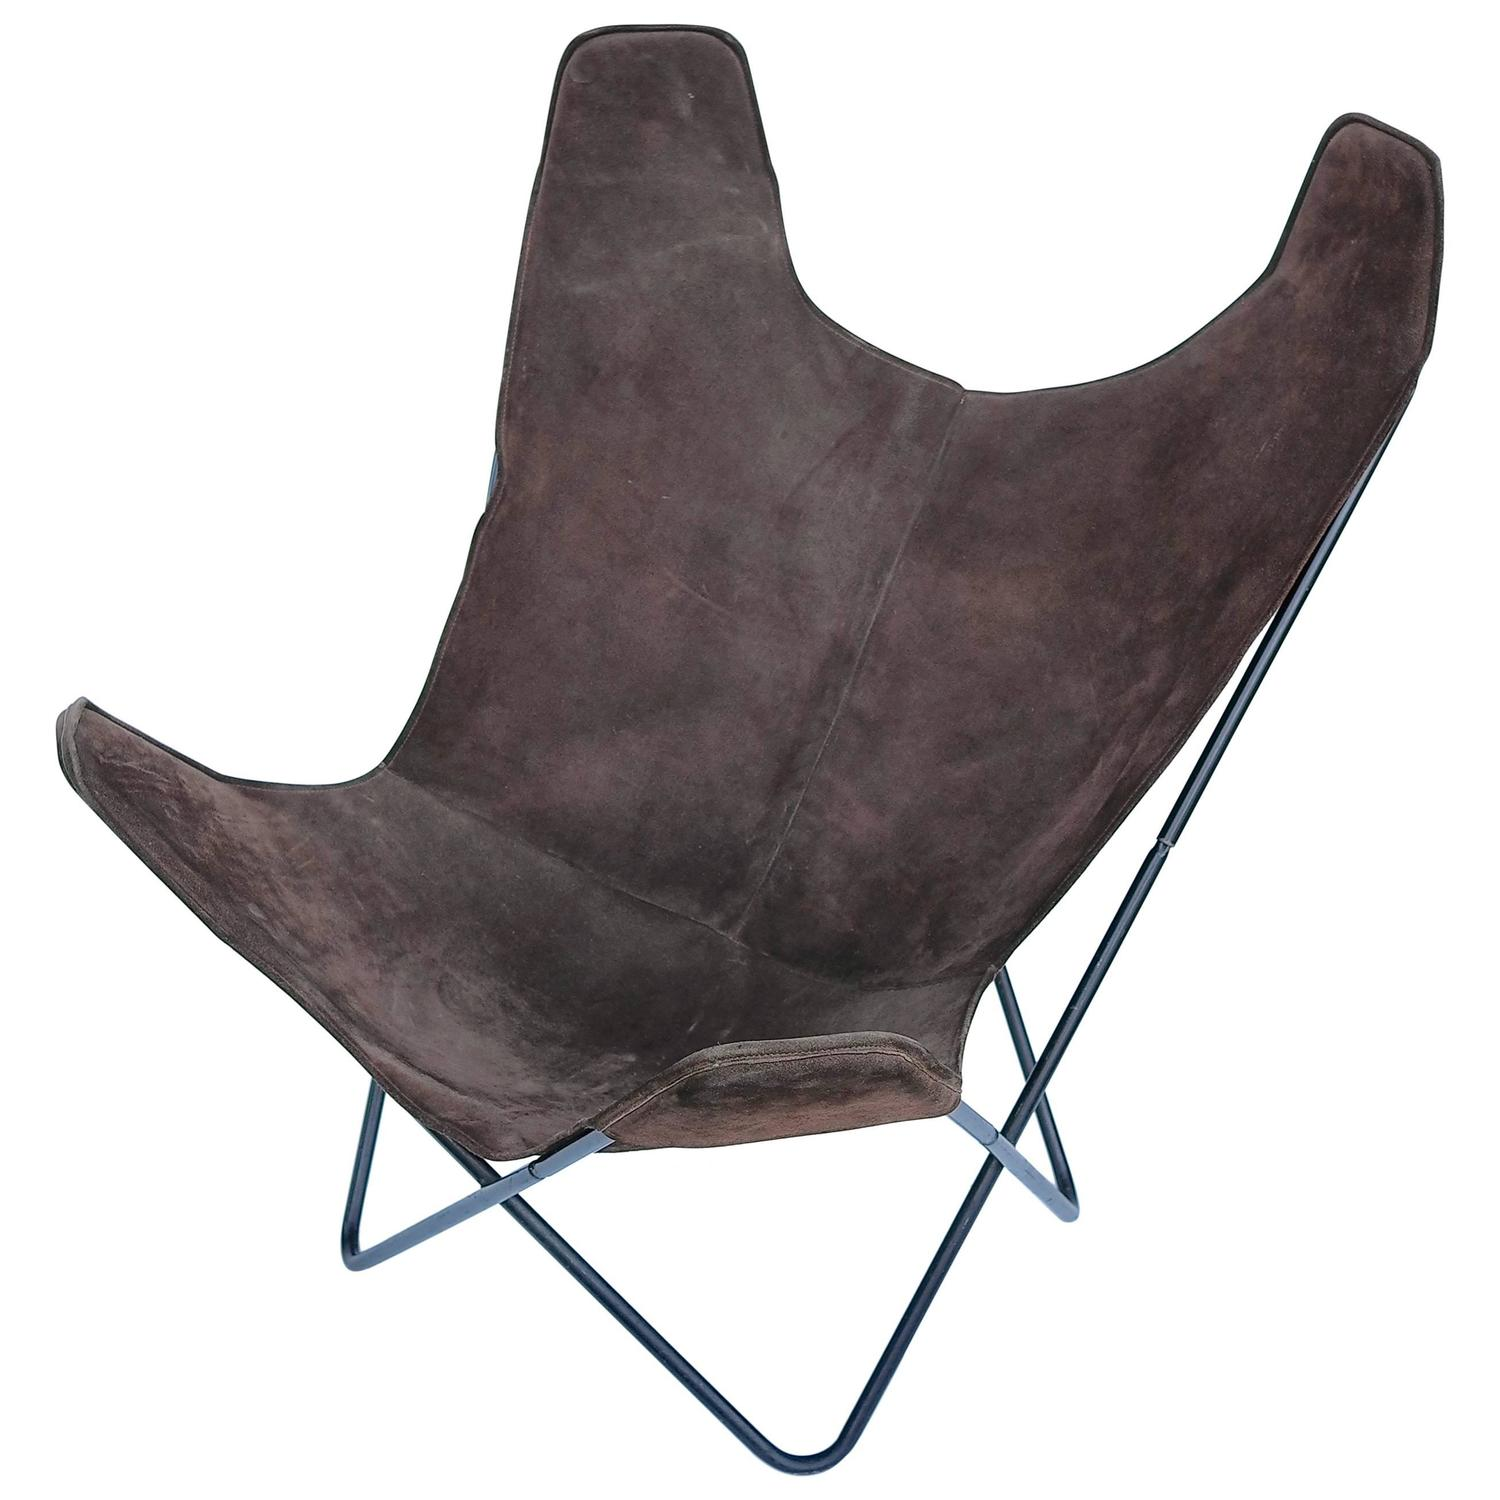 Butterfly chair original - Knoll Butterfly Chair By Jorge Ferrari Hardoy In Suede Leather For Sale At 1stdibs